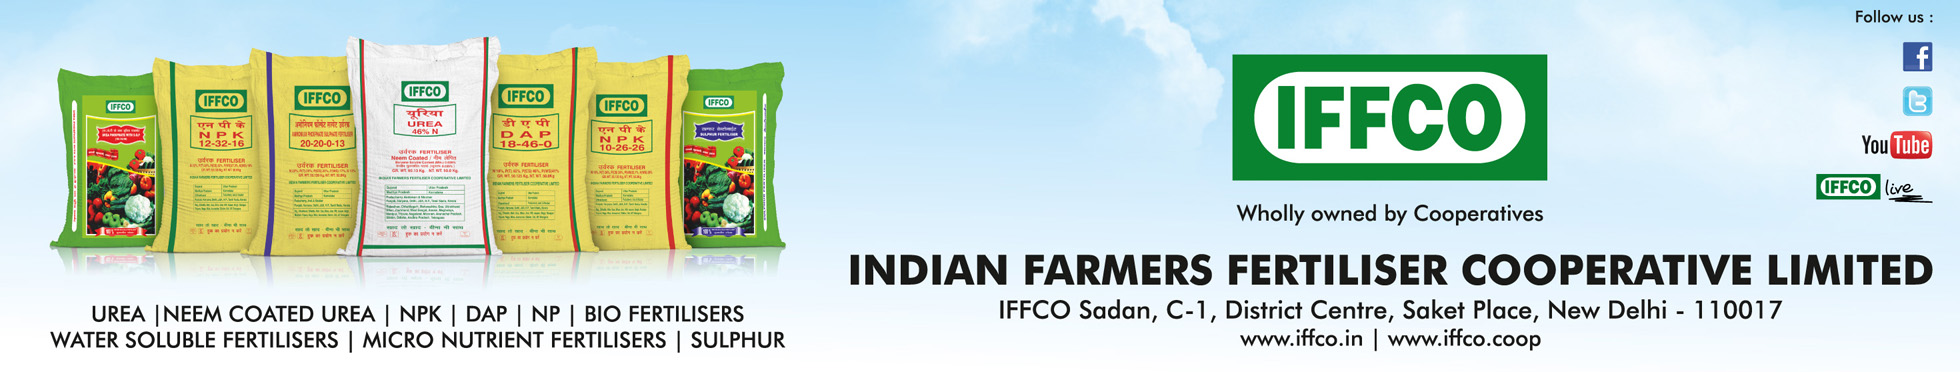 IFFCO Banner